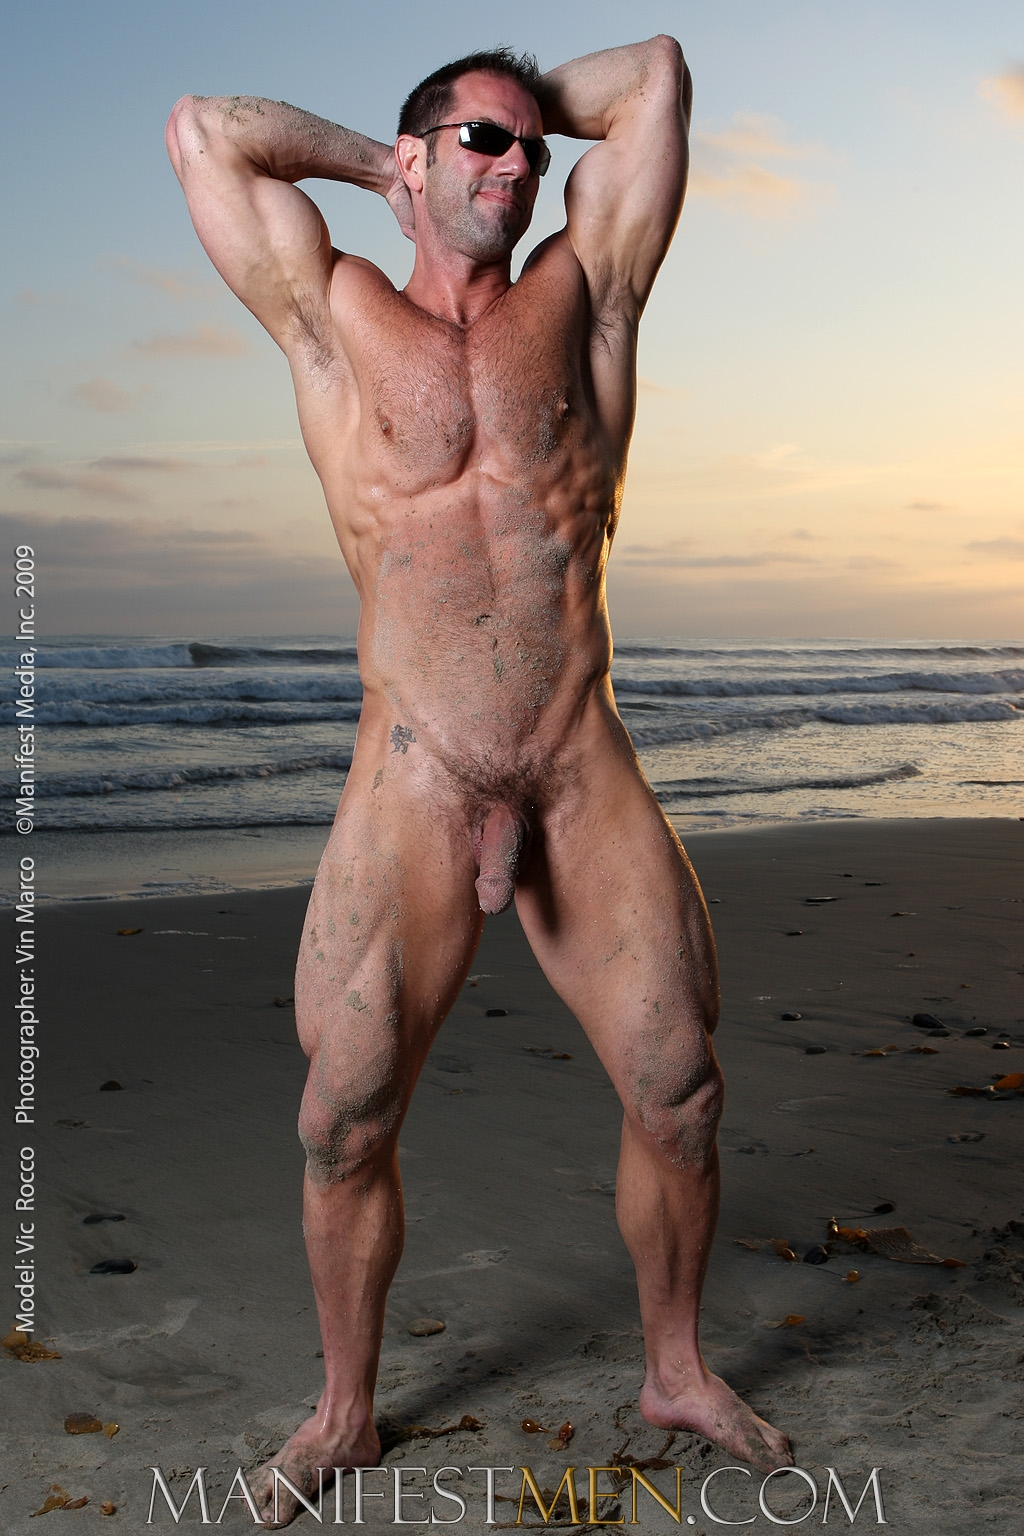 Phrase muscle women on beach naked have